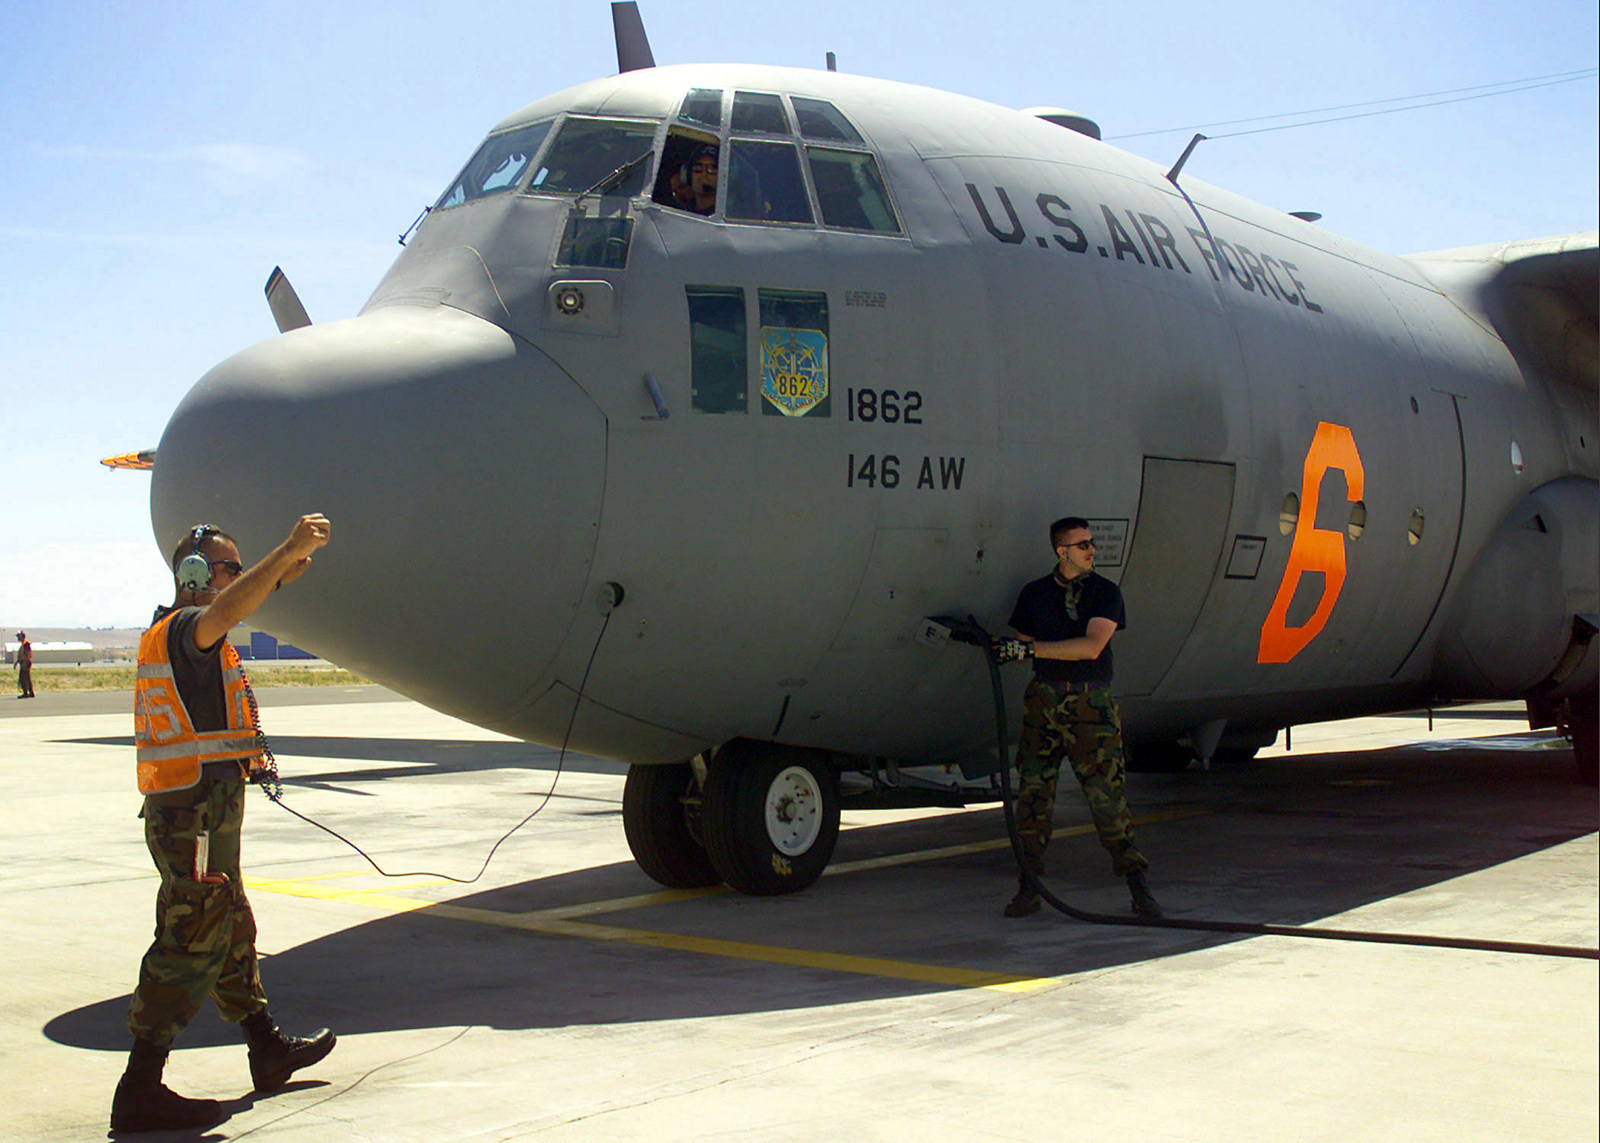 US Air Force (USAF) Airmen assigned to the 146th Airlift Wing (AW), California (CA) Air National Guard Station, prepare to launch their Modular Airborne Fire Fighting System (MAFFS) C-130 Hercules aircraft for another firefighting mission in support of the National Interagency Fire Center in Boise, Idaho